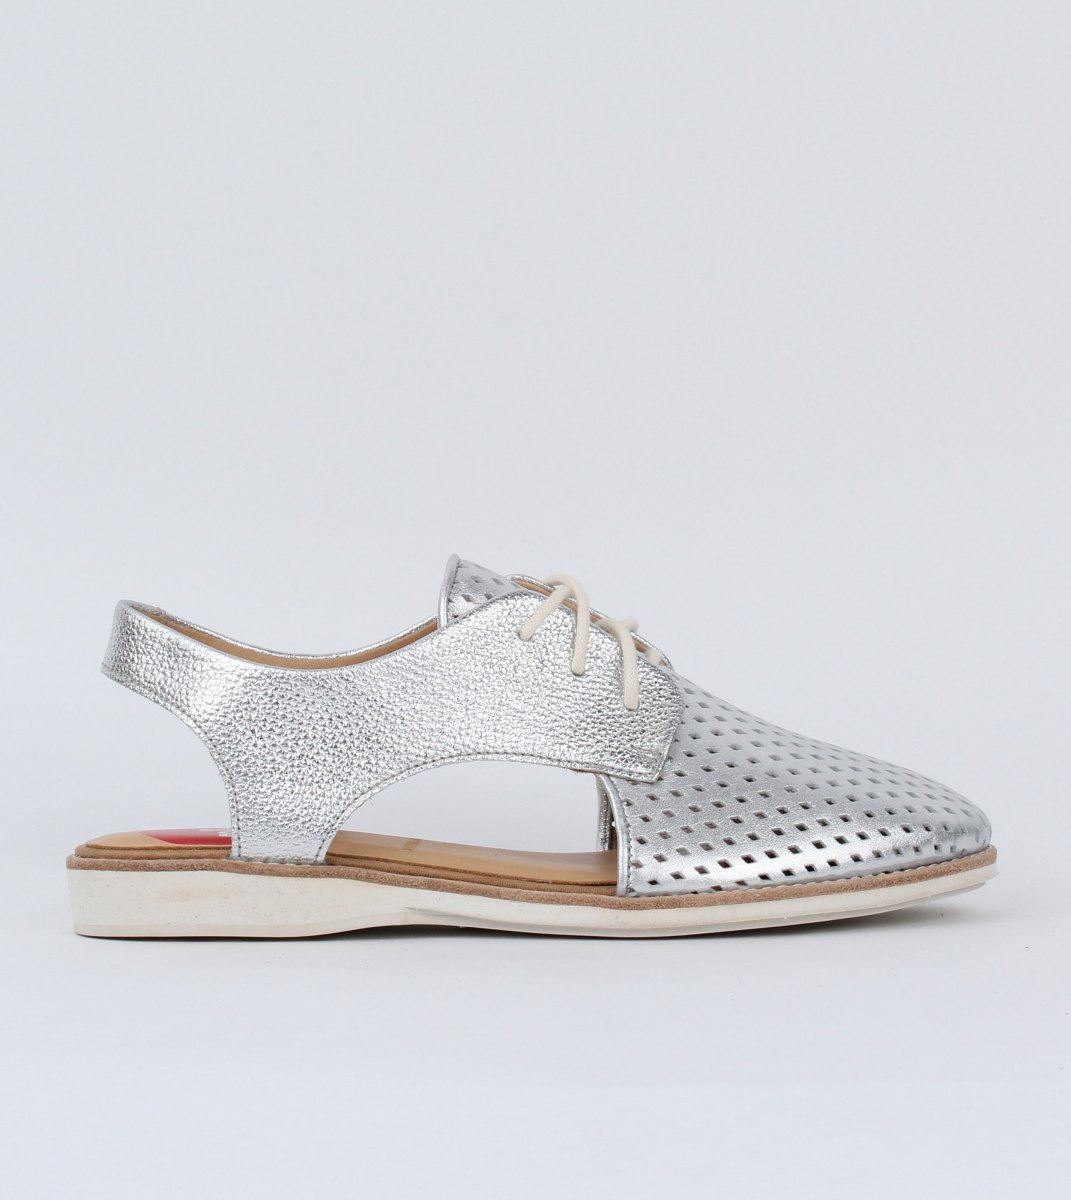 Rollie-Derby_Slingback_Punch-Silver_Silver-Outside